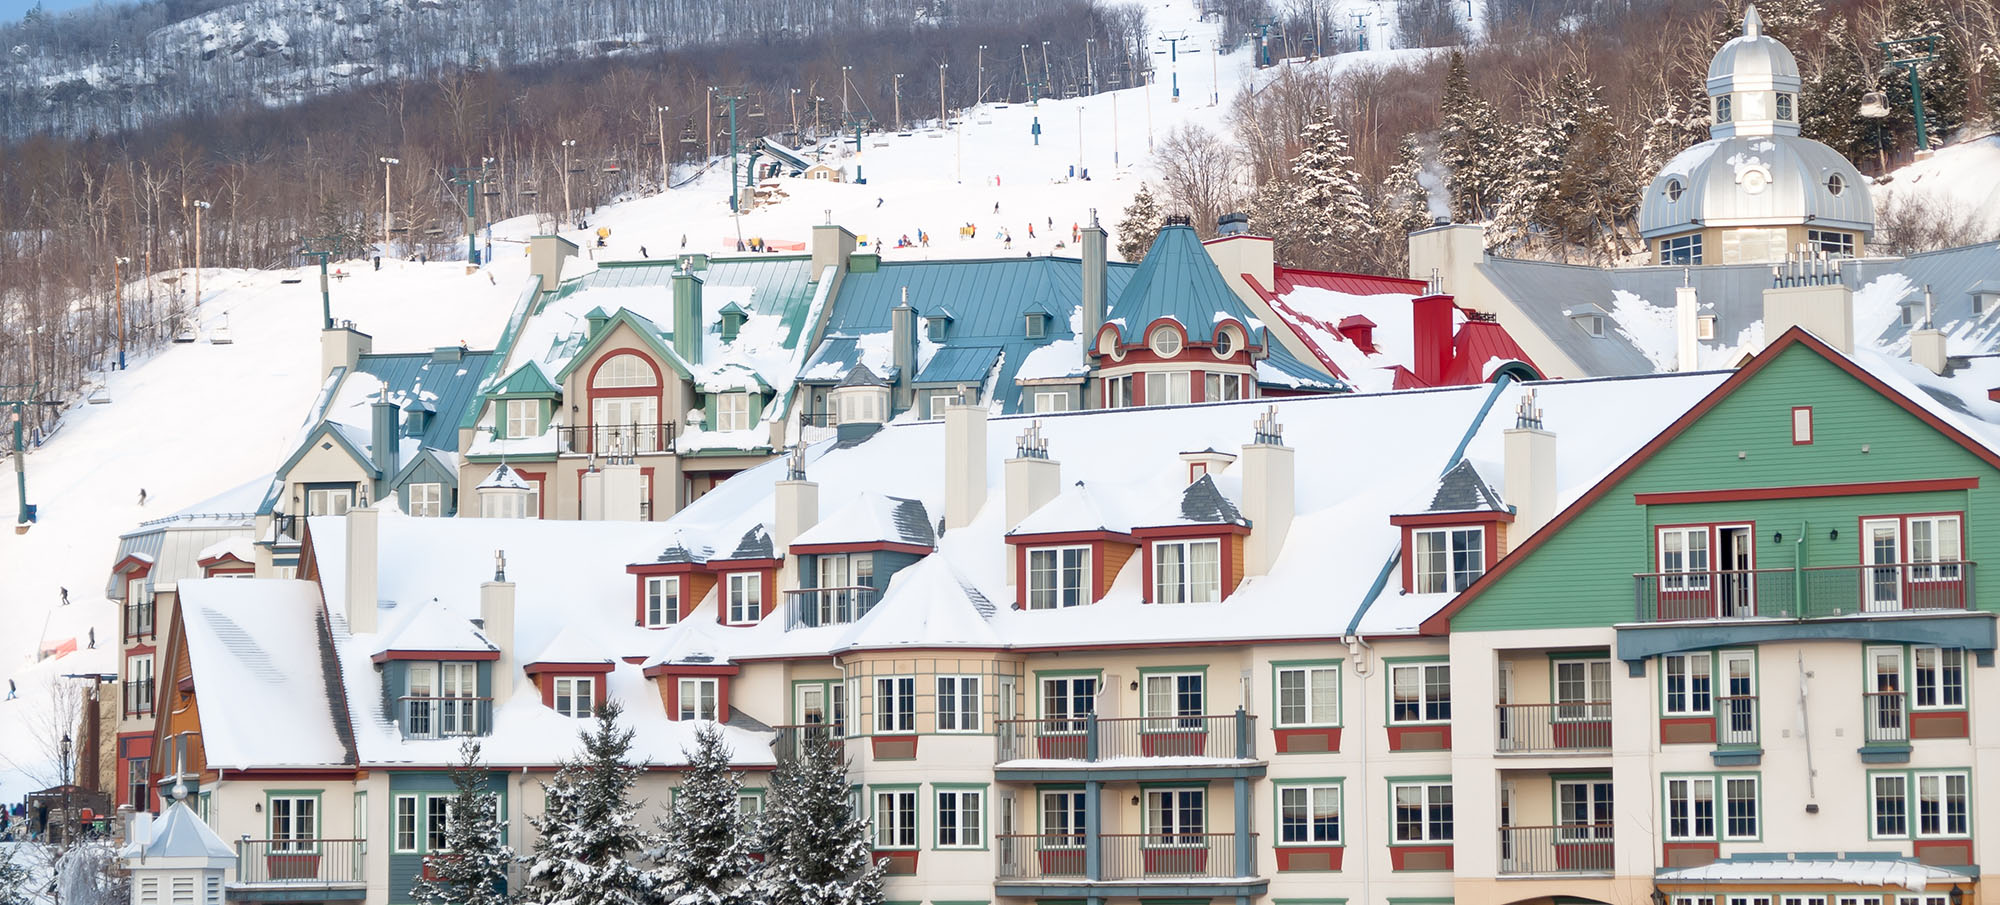 tremblant-winter